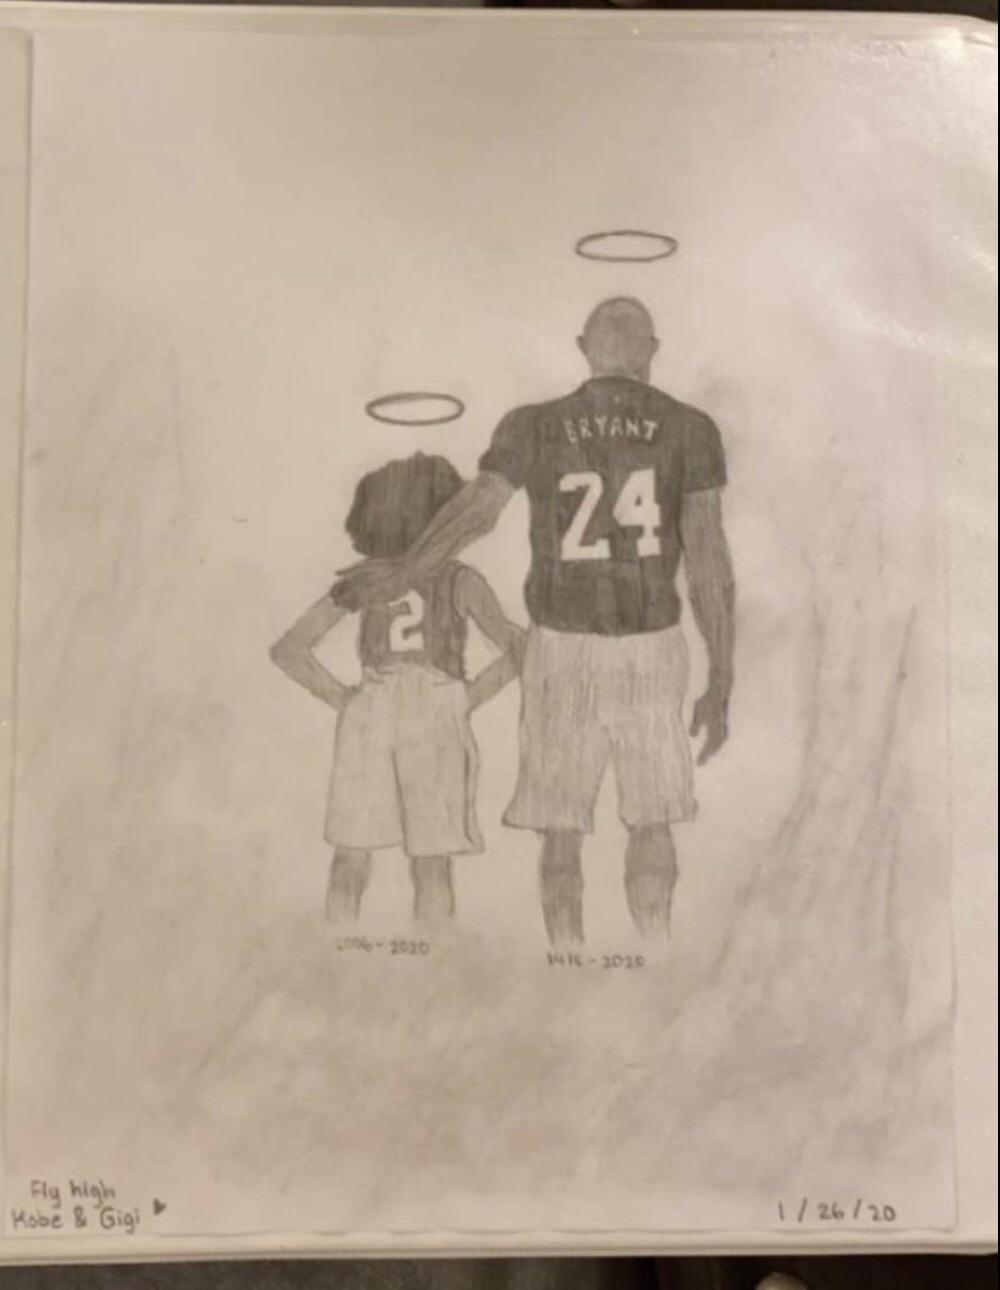 Heartbreaking drawing shows Kobe Bryant and 13-year-old